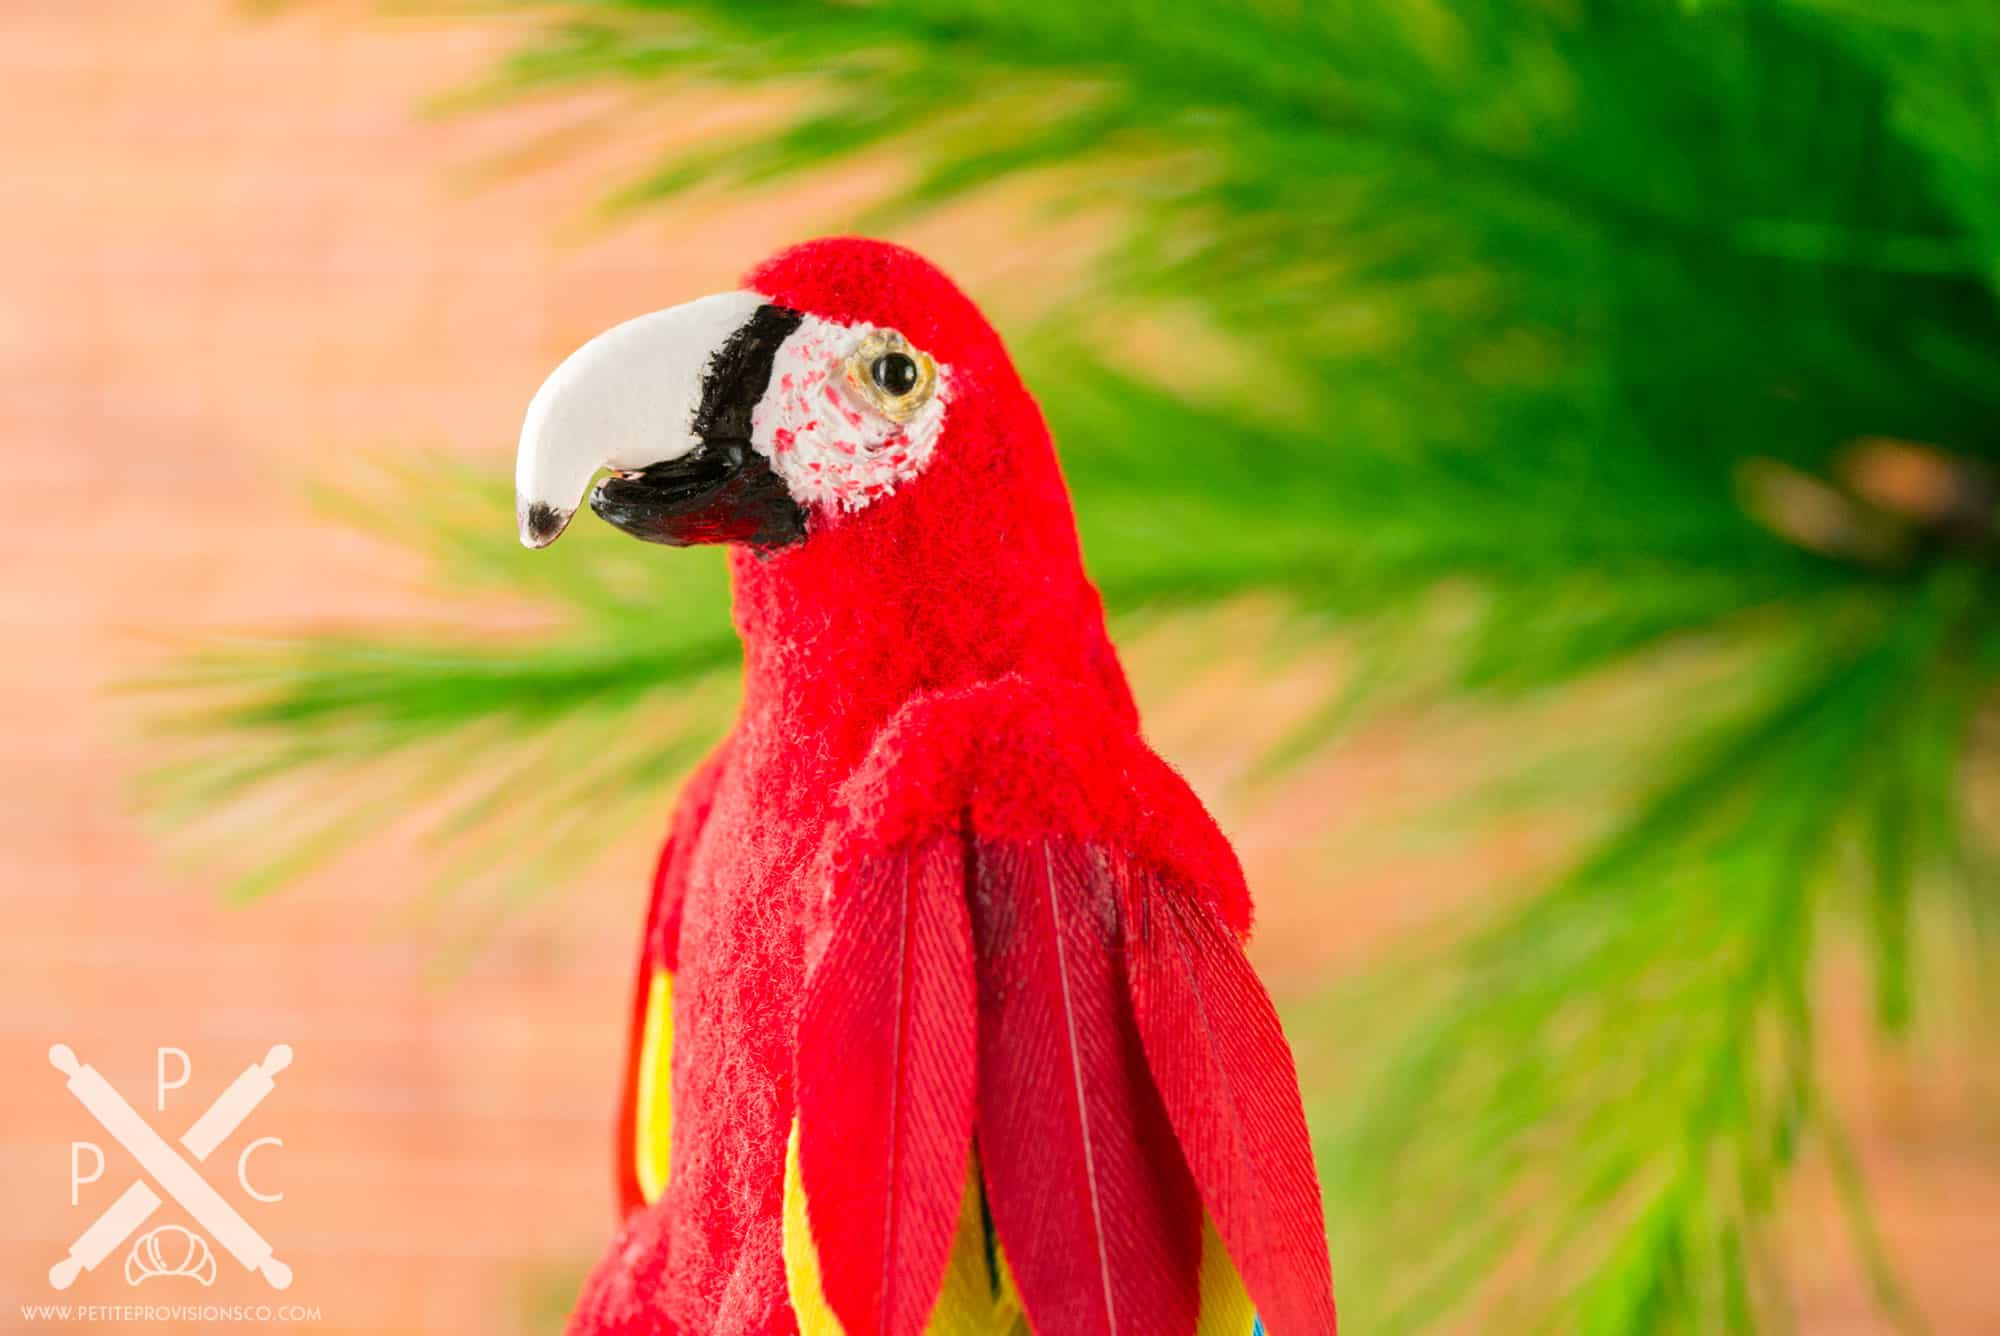 Dollhouse Miniature Conservatory by The Petite Provisions Co. - The Scarlet Macaw